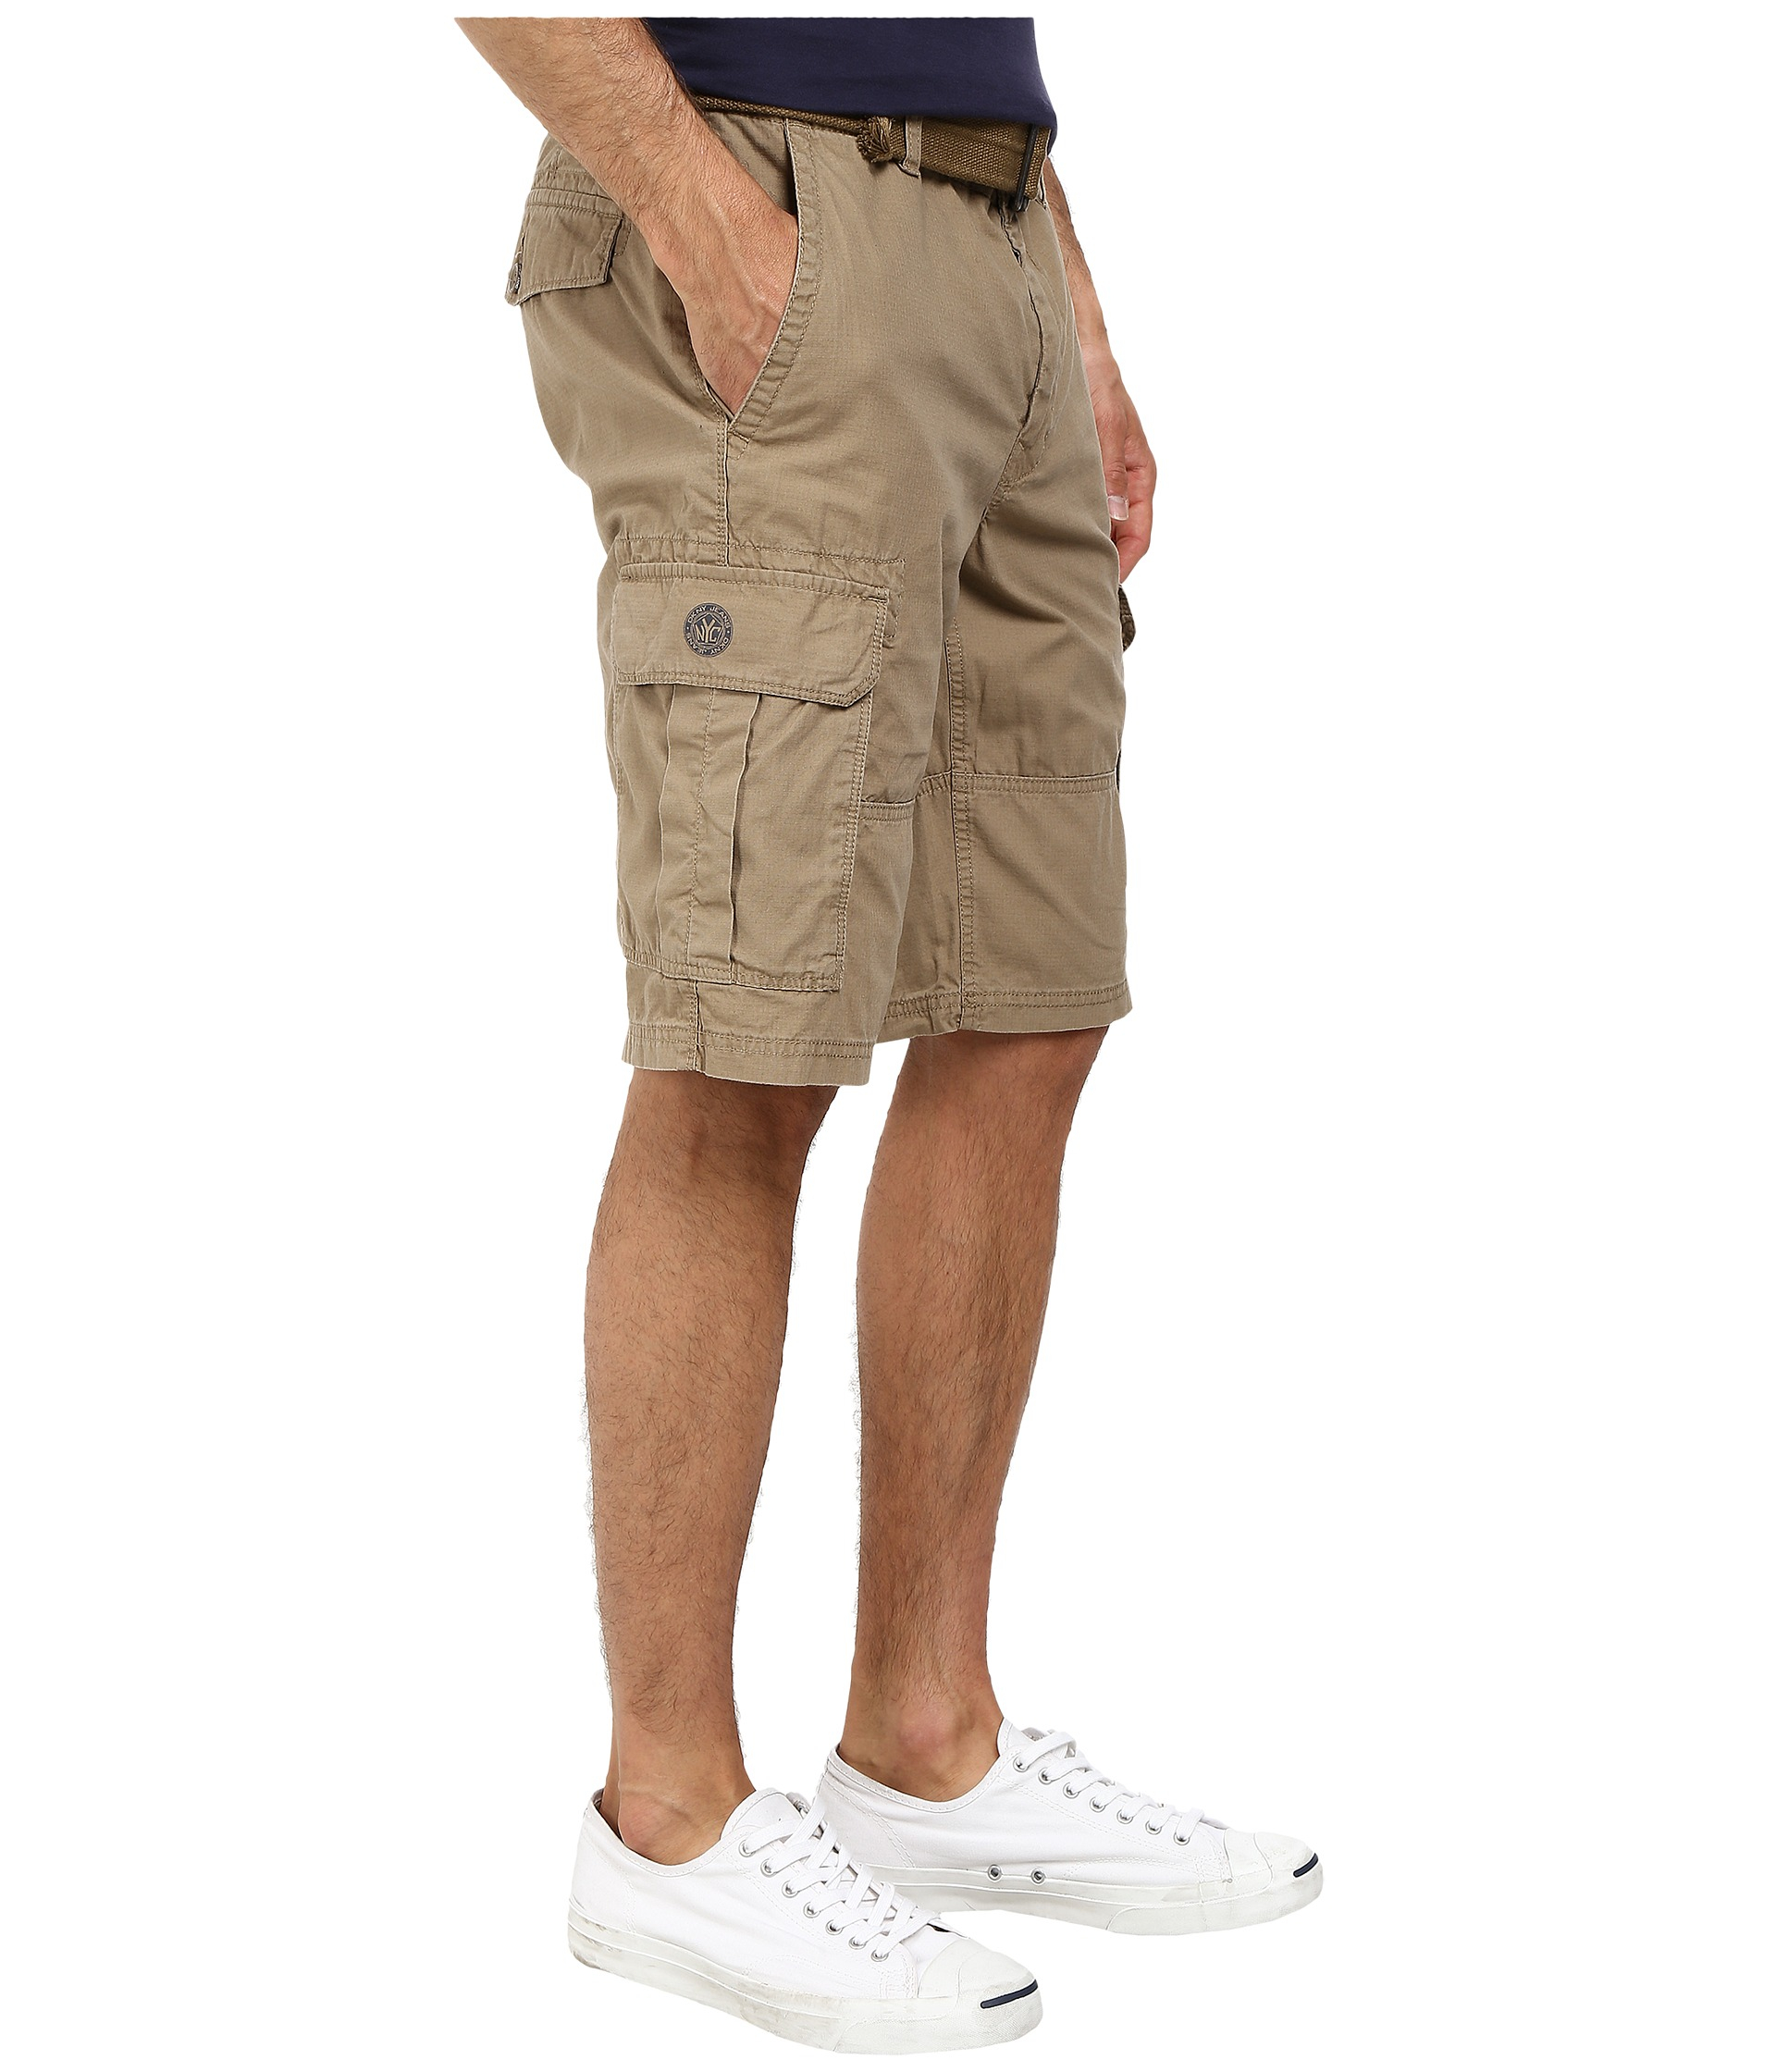 dfdec448bf Lyst - DKNY Mini Ripstop Cargo Shorts In Lead Gray in Brown for Men